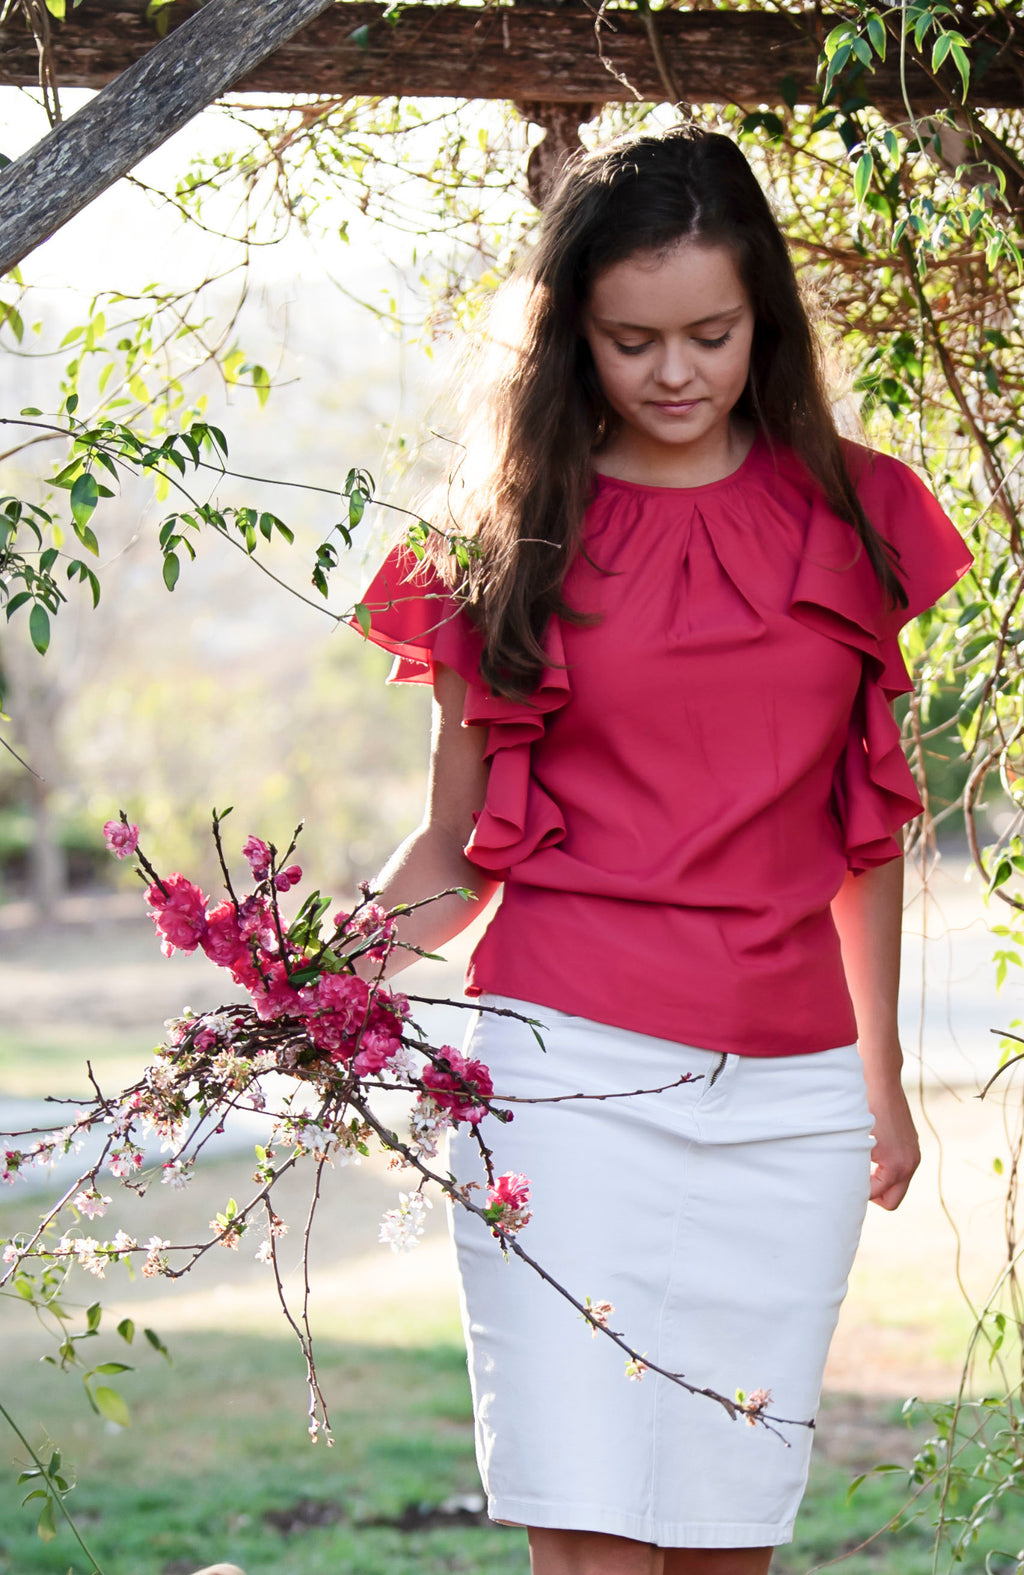 Modest Fashion Label Australia | Feminine Hot Deep Pink Frilled Sleeve Bamboo Top | Modest Tops Australia | Cousin Billie